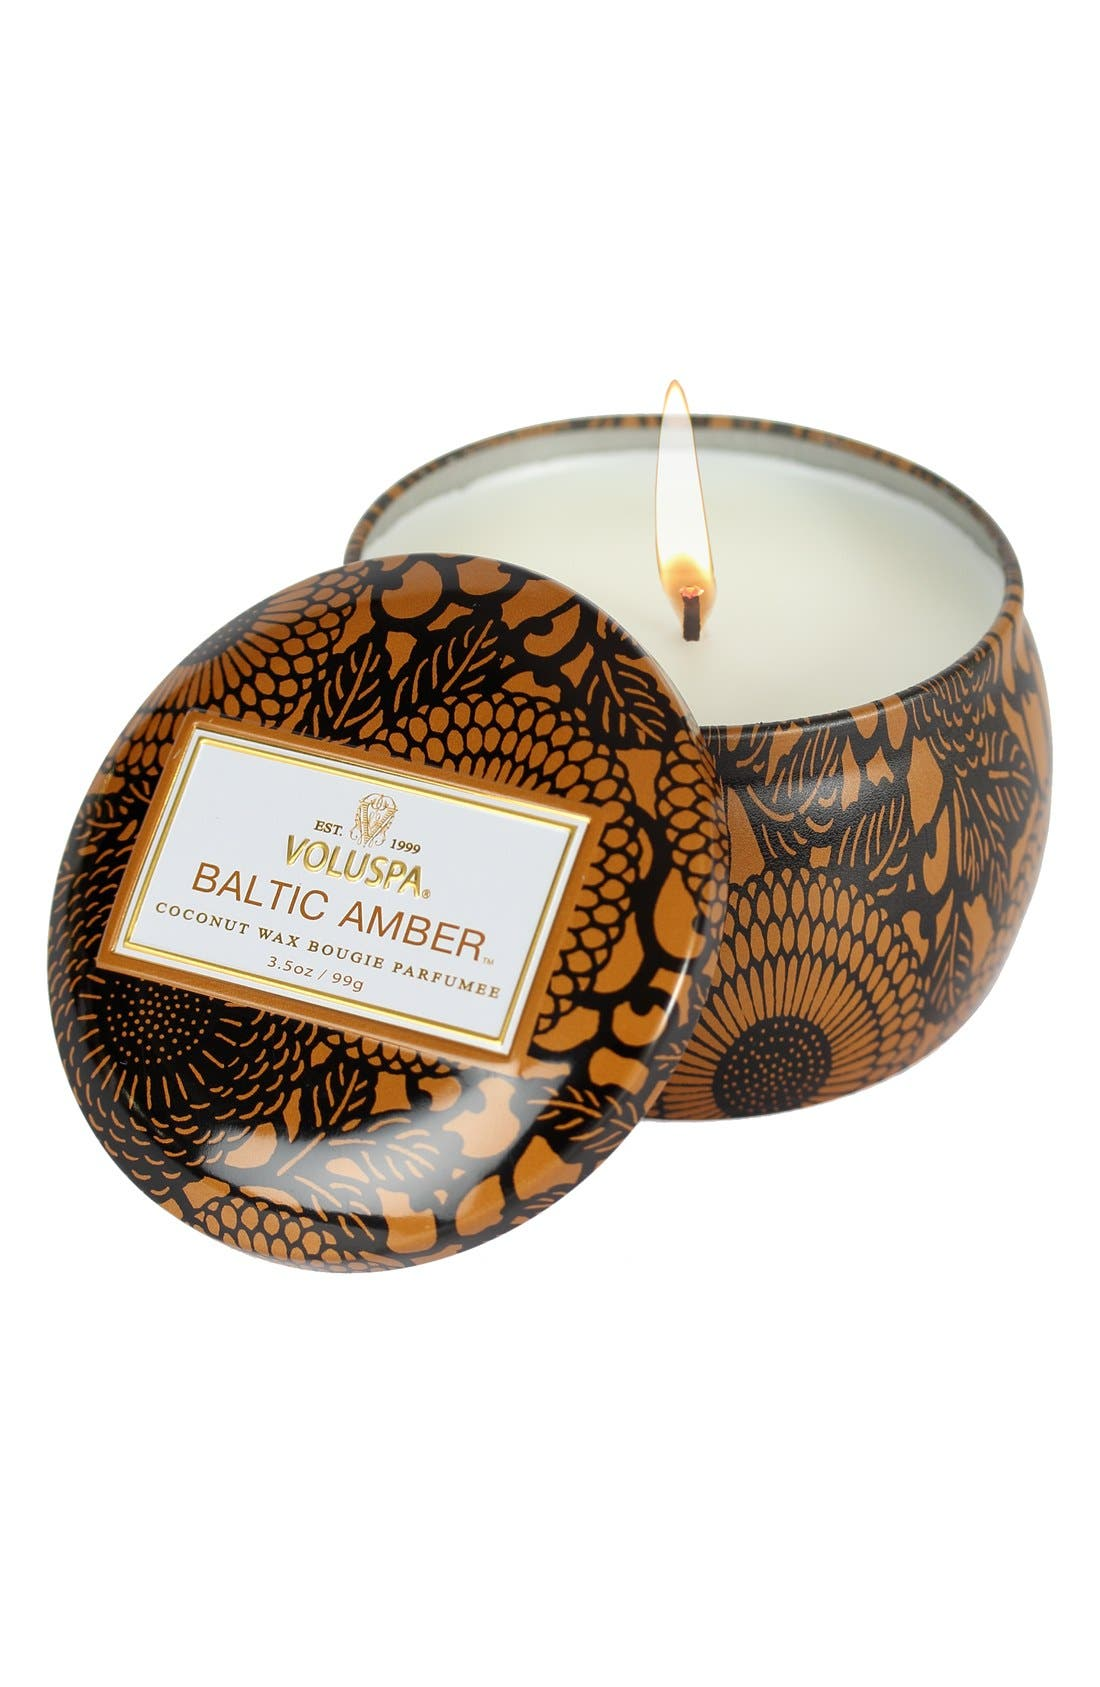 Alternate Image 1 Selected - Voluspa 'Japonica - Baltic Amber' Petite Decorative Candle